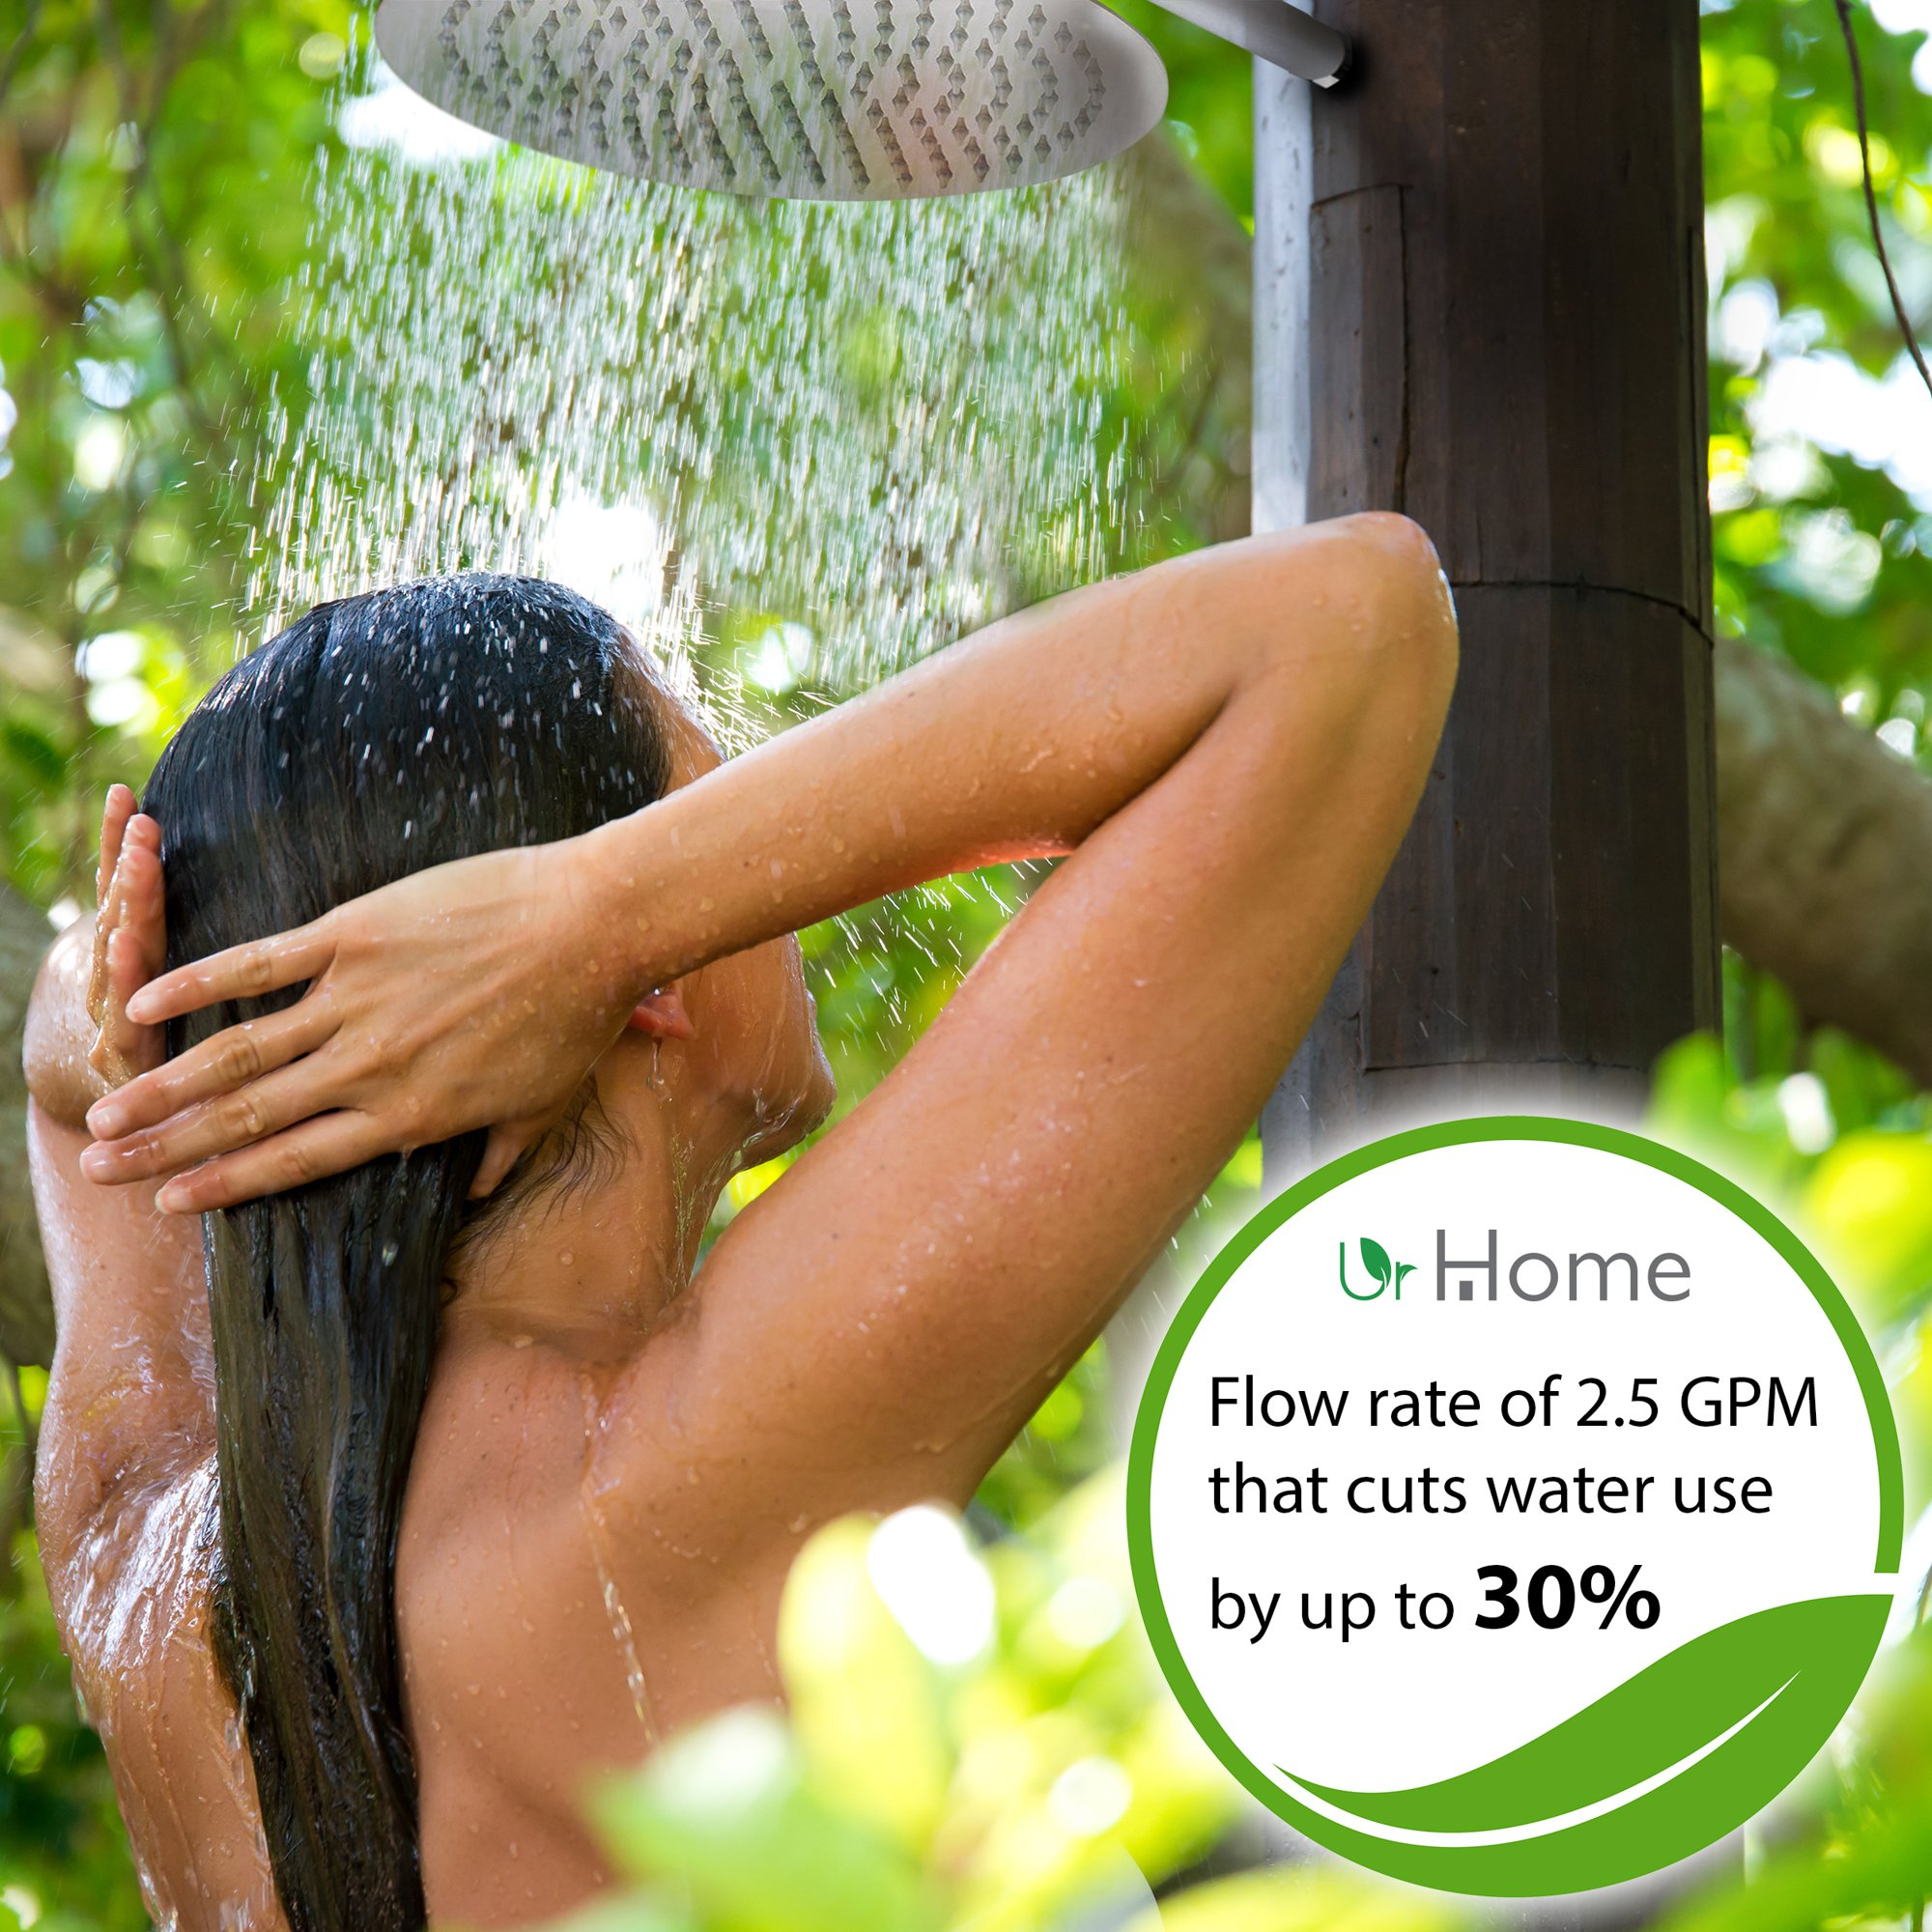 Luxury Rainfall Shower Head By Urhome - 10 Inch Wide For A Spa Like Bathroom - Easy To Install No Tools Required - Eco Friendly High Flow Showerhead - Soothing And Fun by urHome Brand (Image #4)